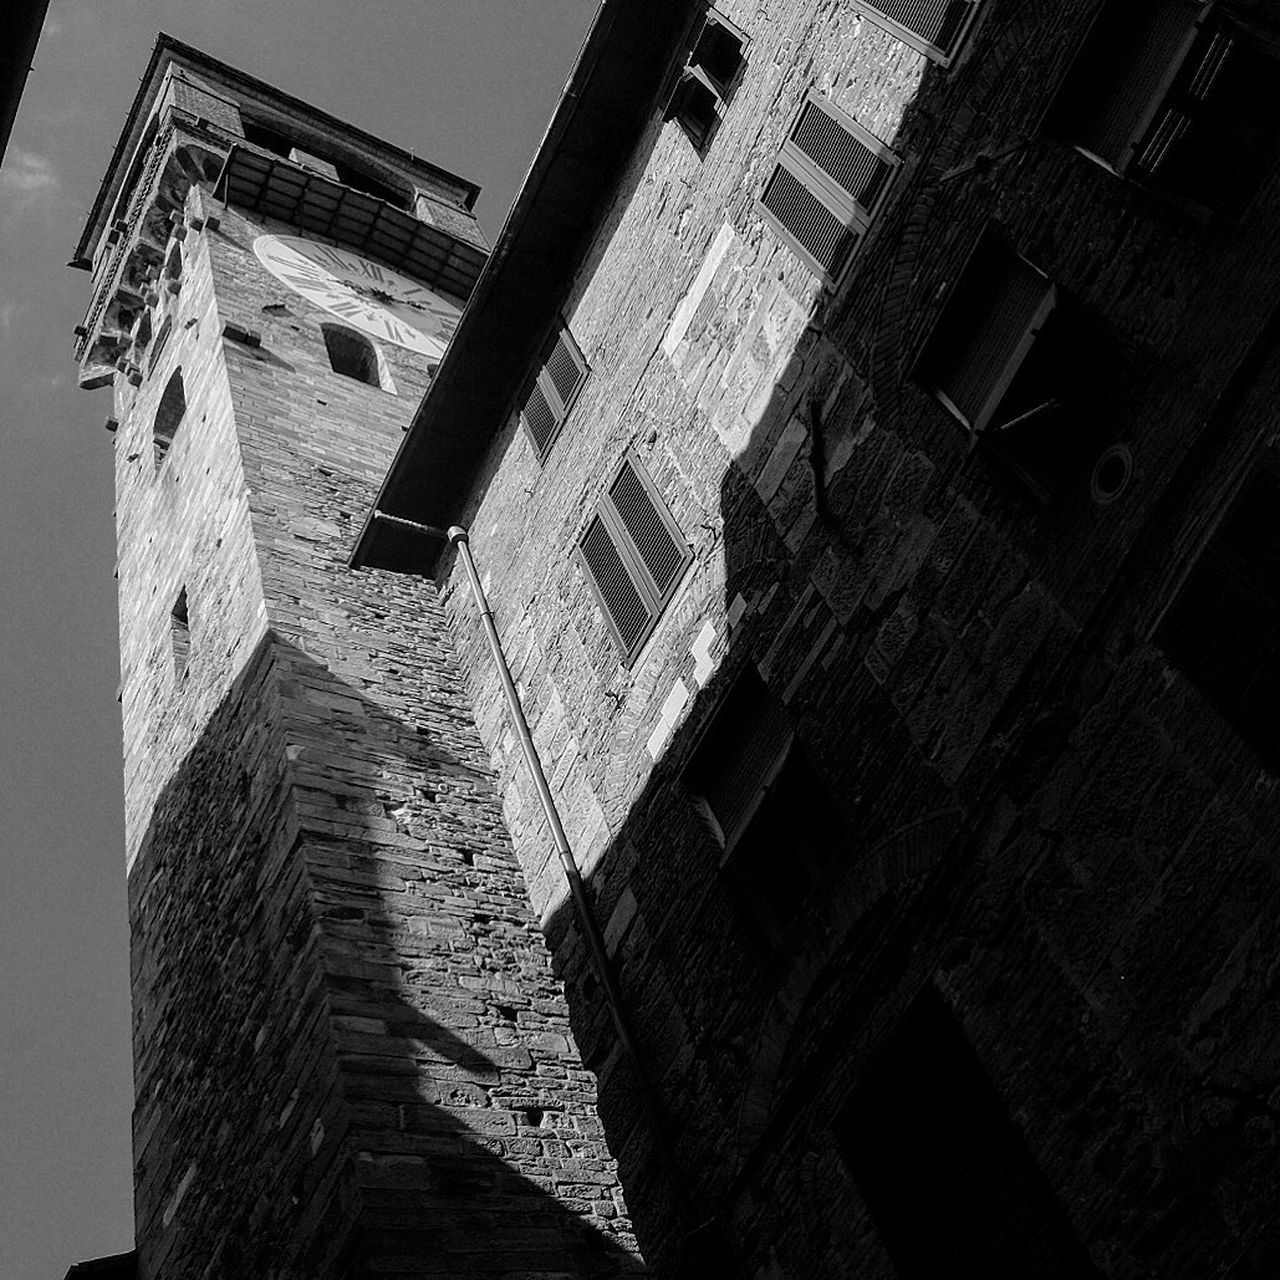 Architecture Built Structure Low Angle View Building Exterior History Brick Wall No People Old Ruin Day Outdoors Sky Lucca Tuscany Toscana Clock Tower Architecture FUJIFILM X-T1 Fujifilm_xseries Fujifilm Fuji X-T1